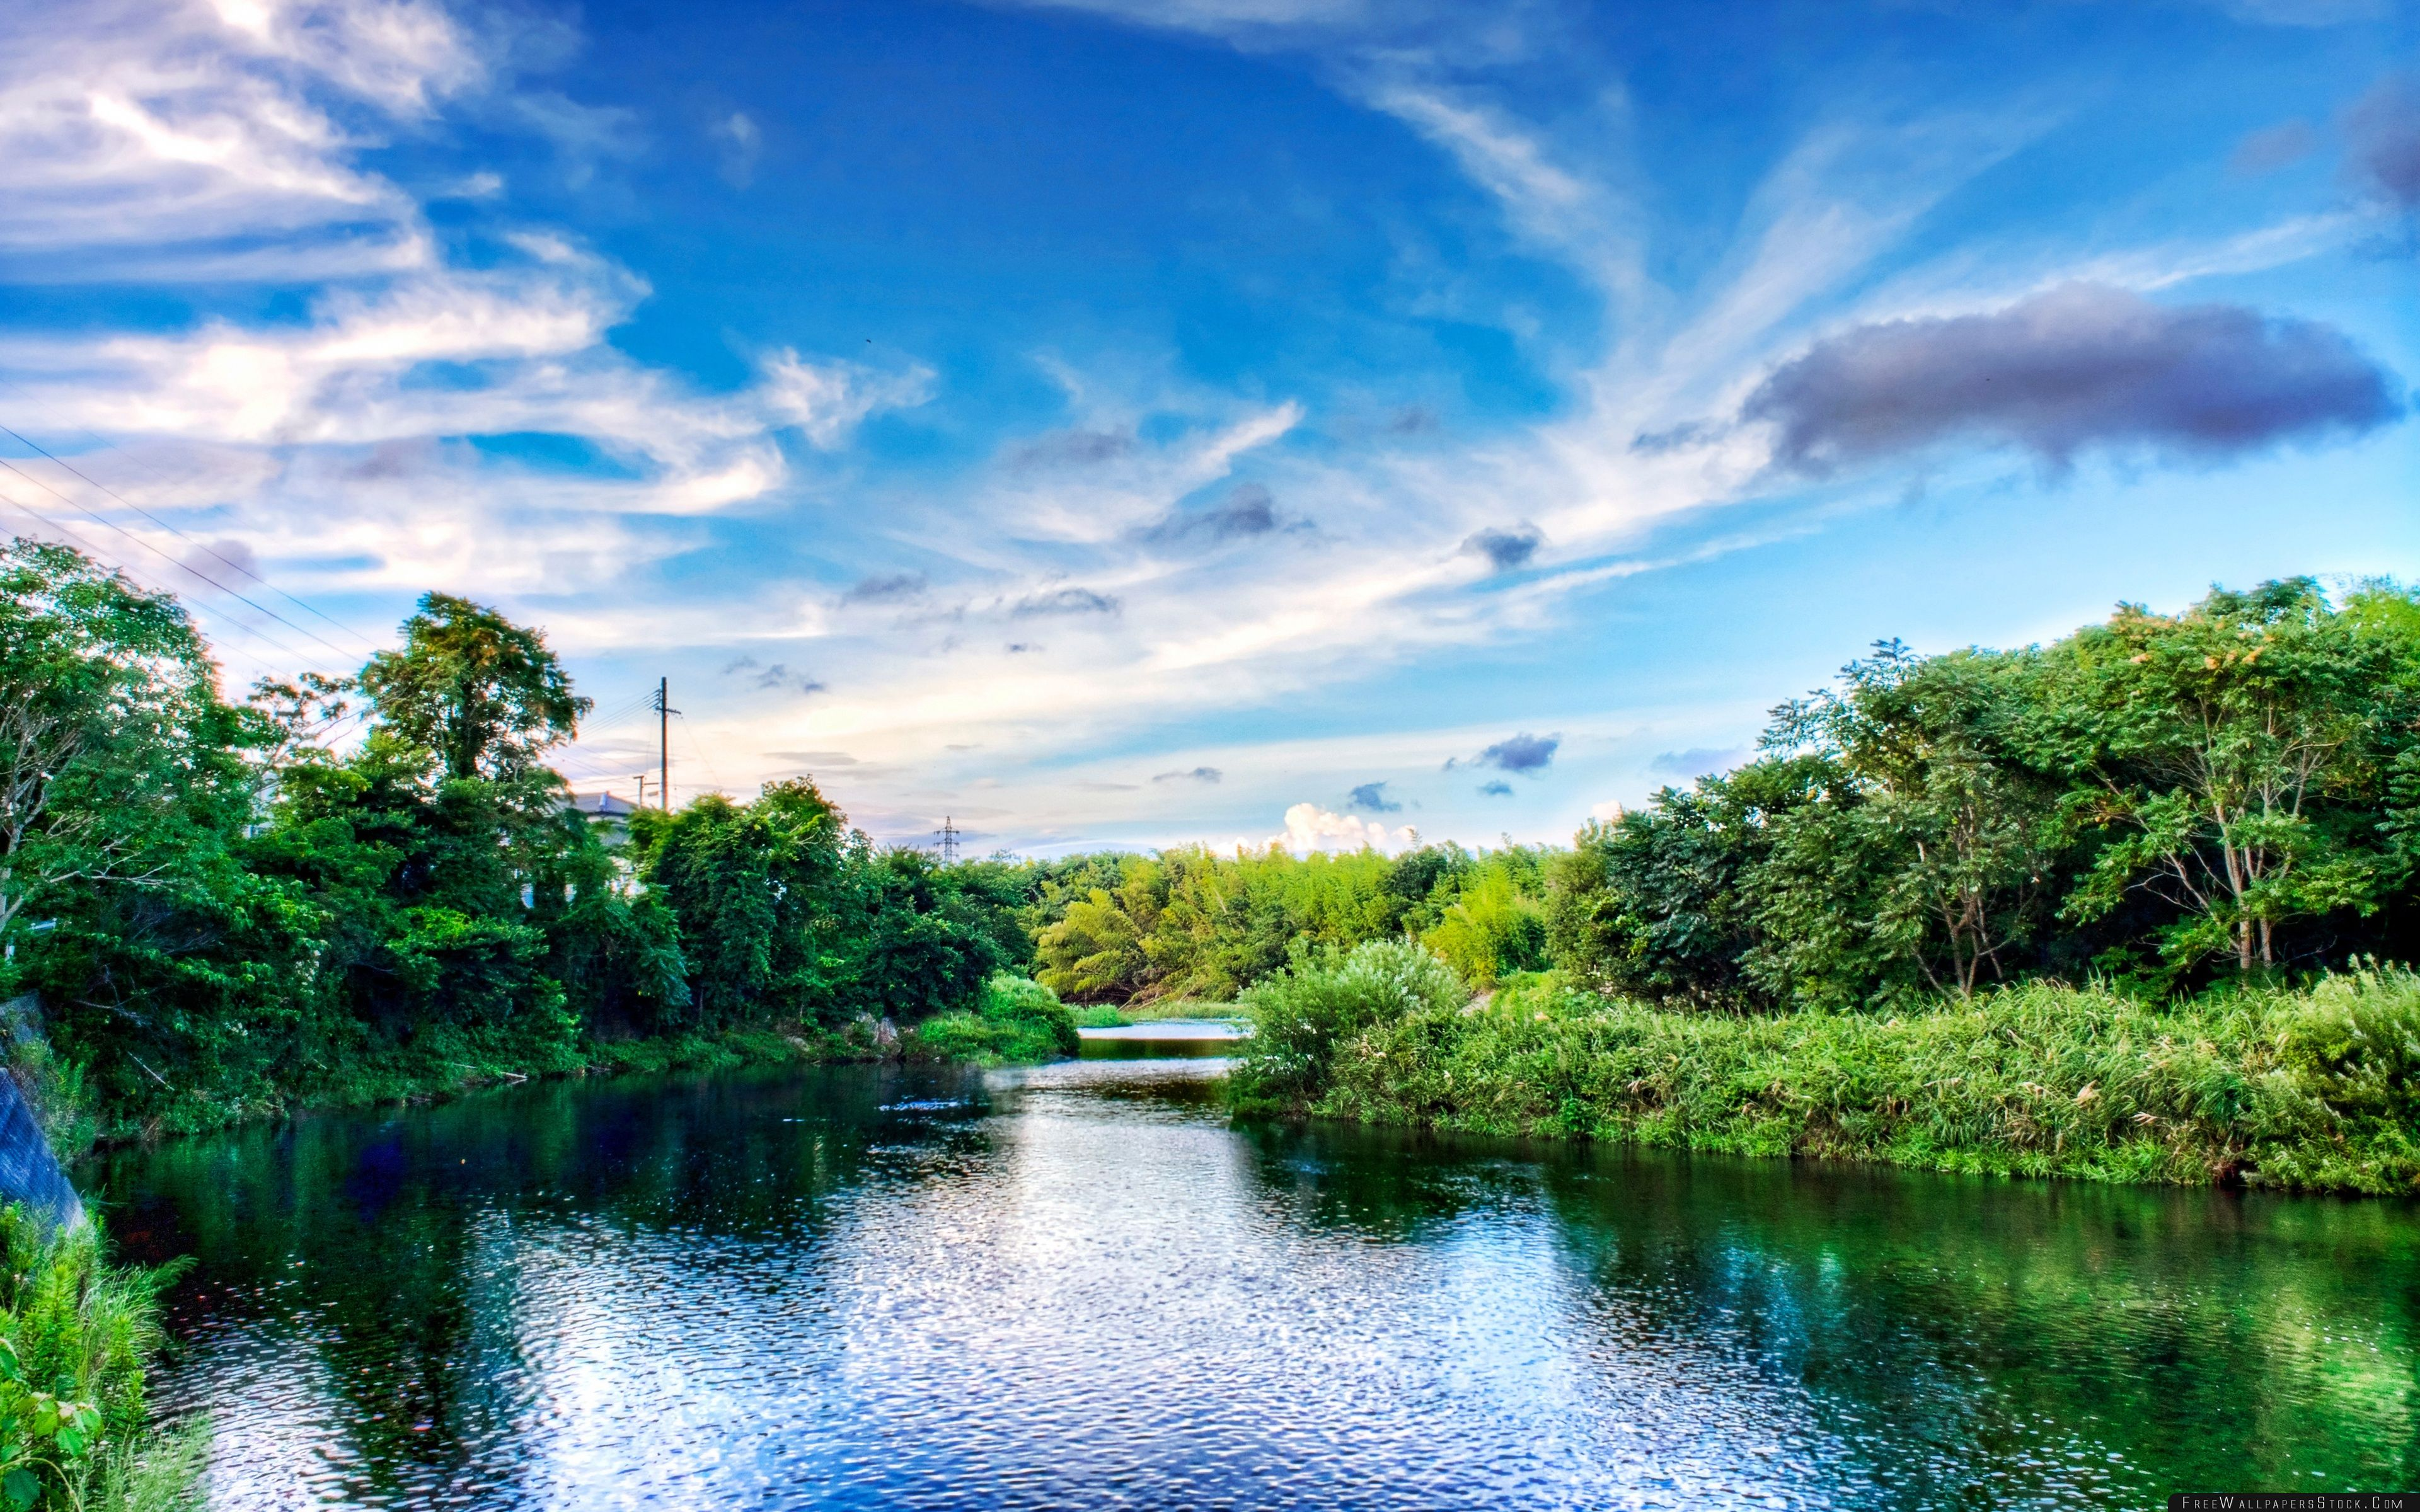 Download Free Wallpaper The River Flows There